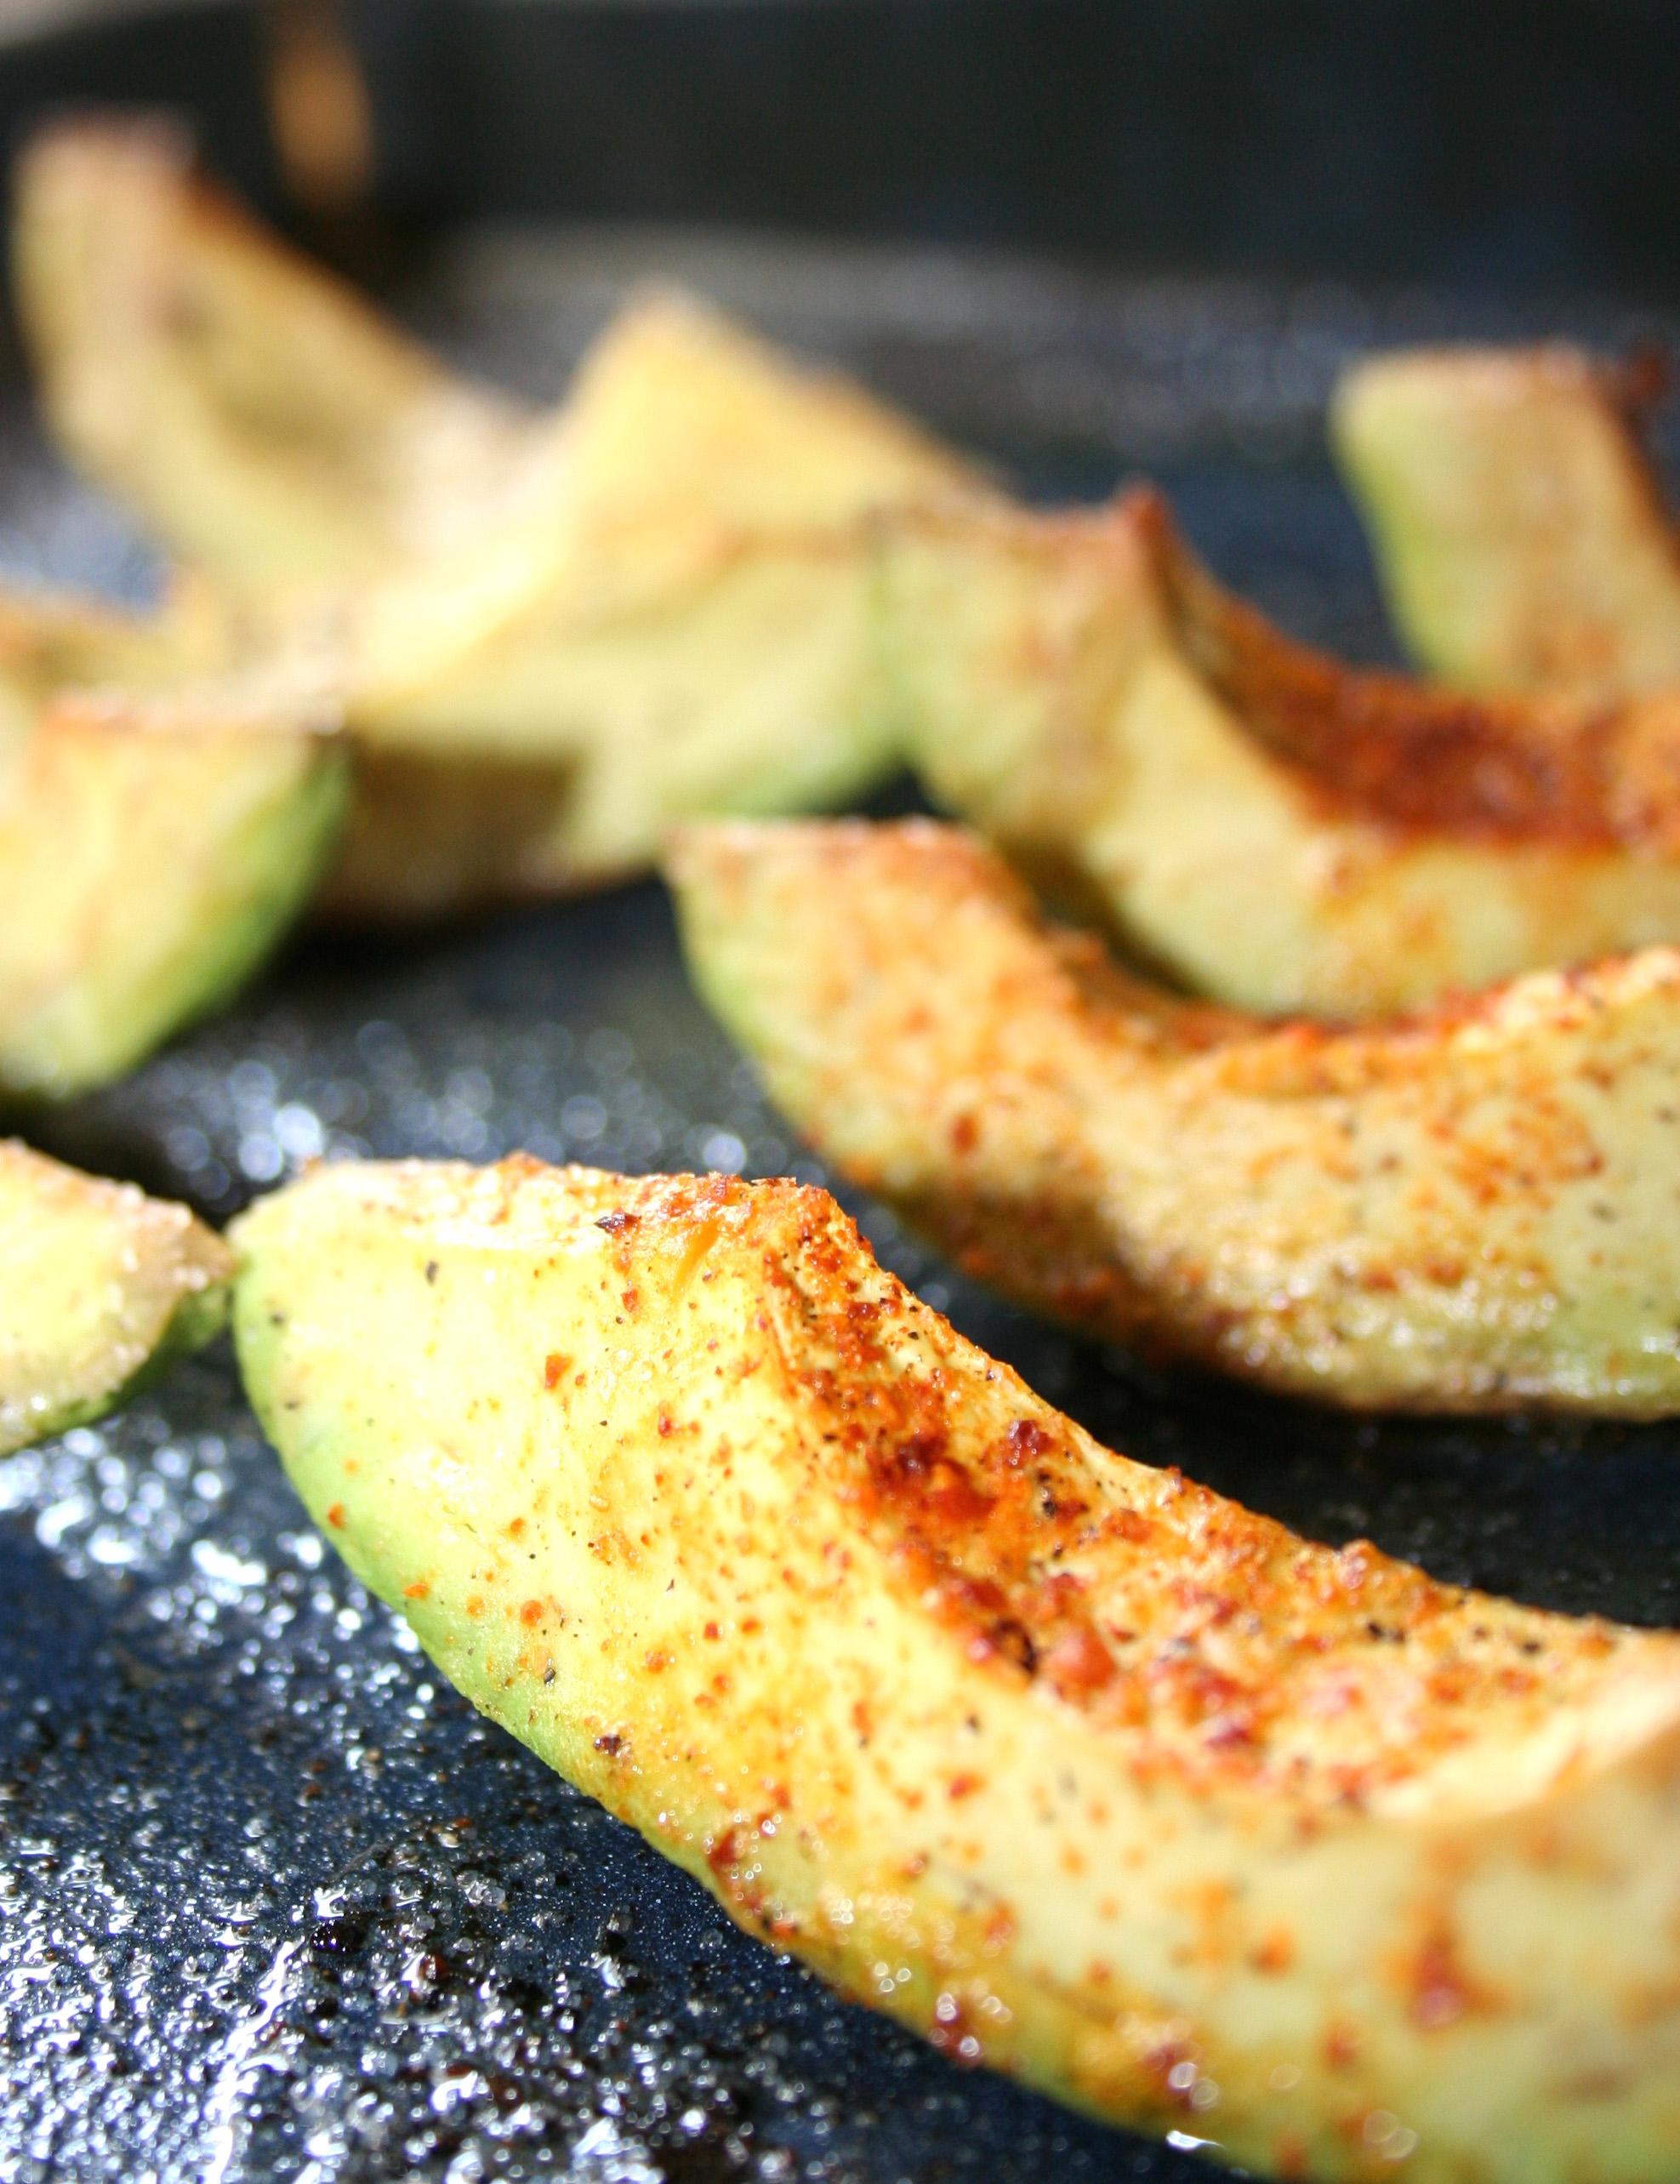 Baked avocado slices